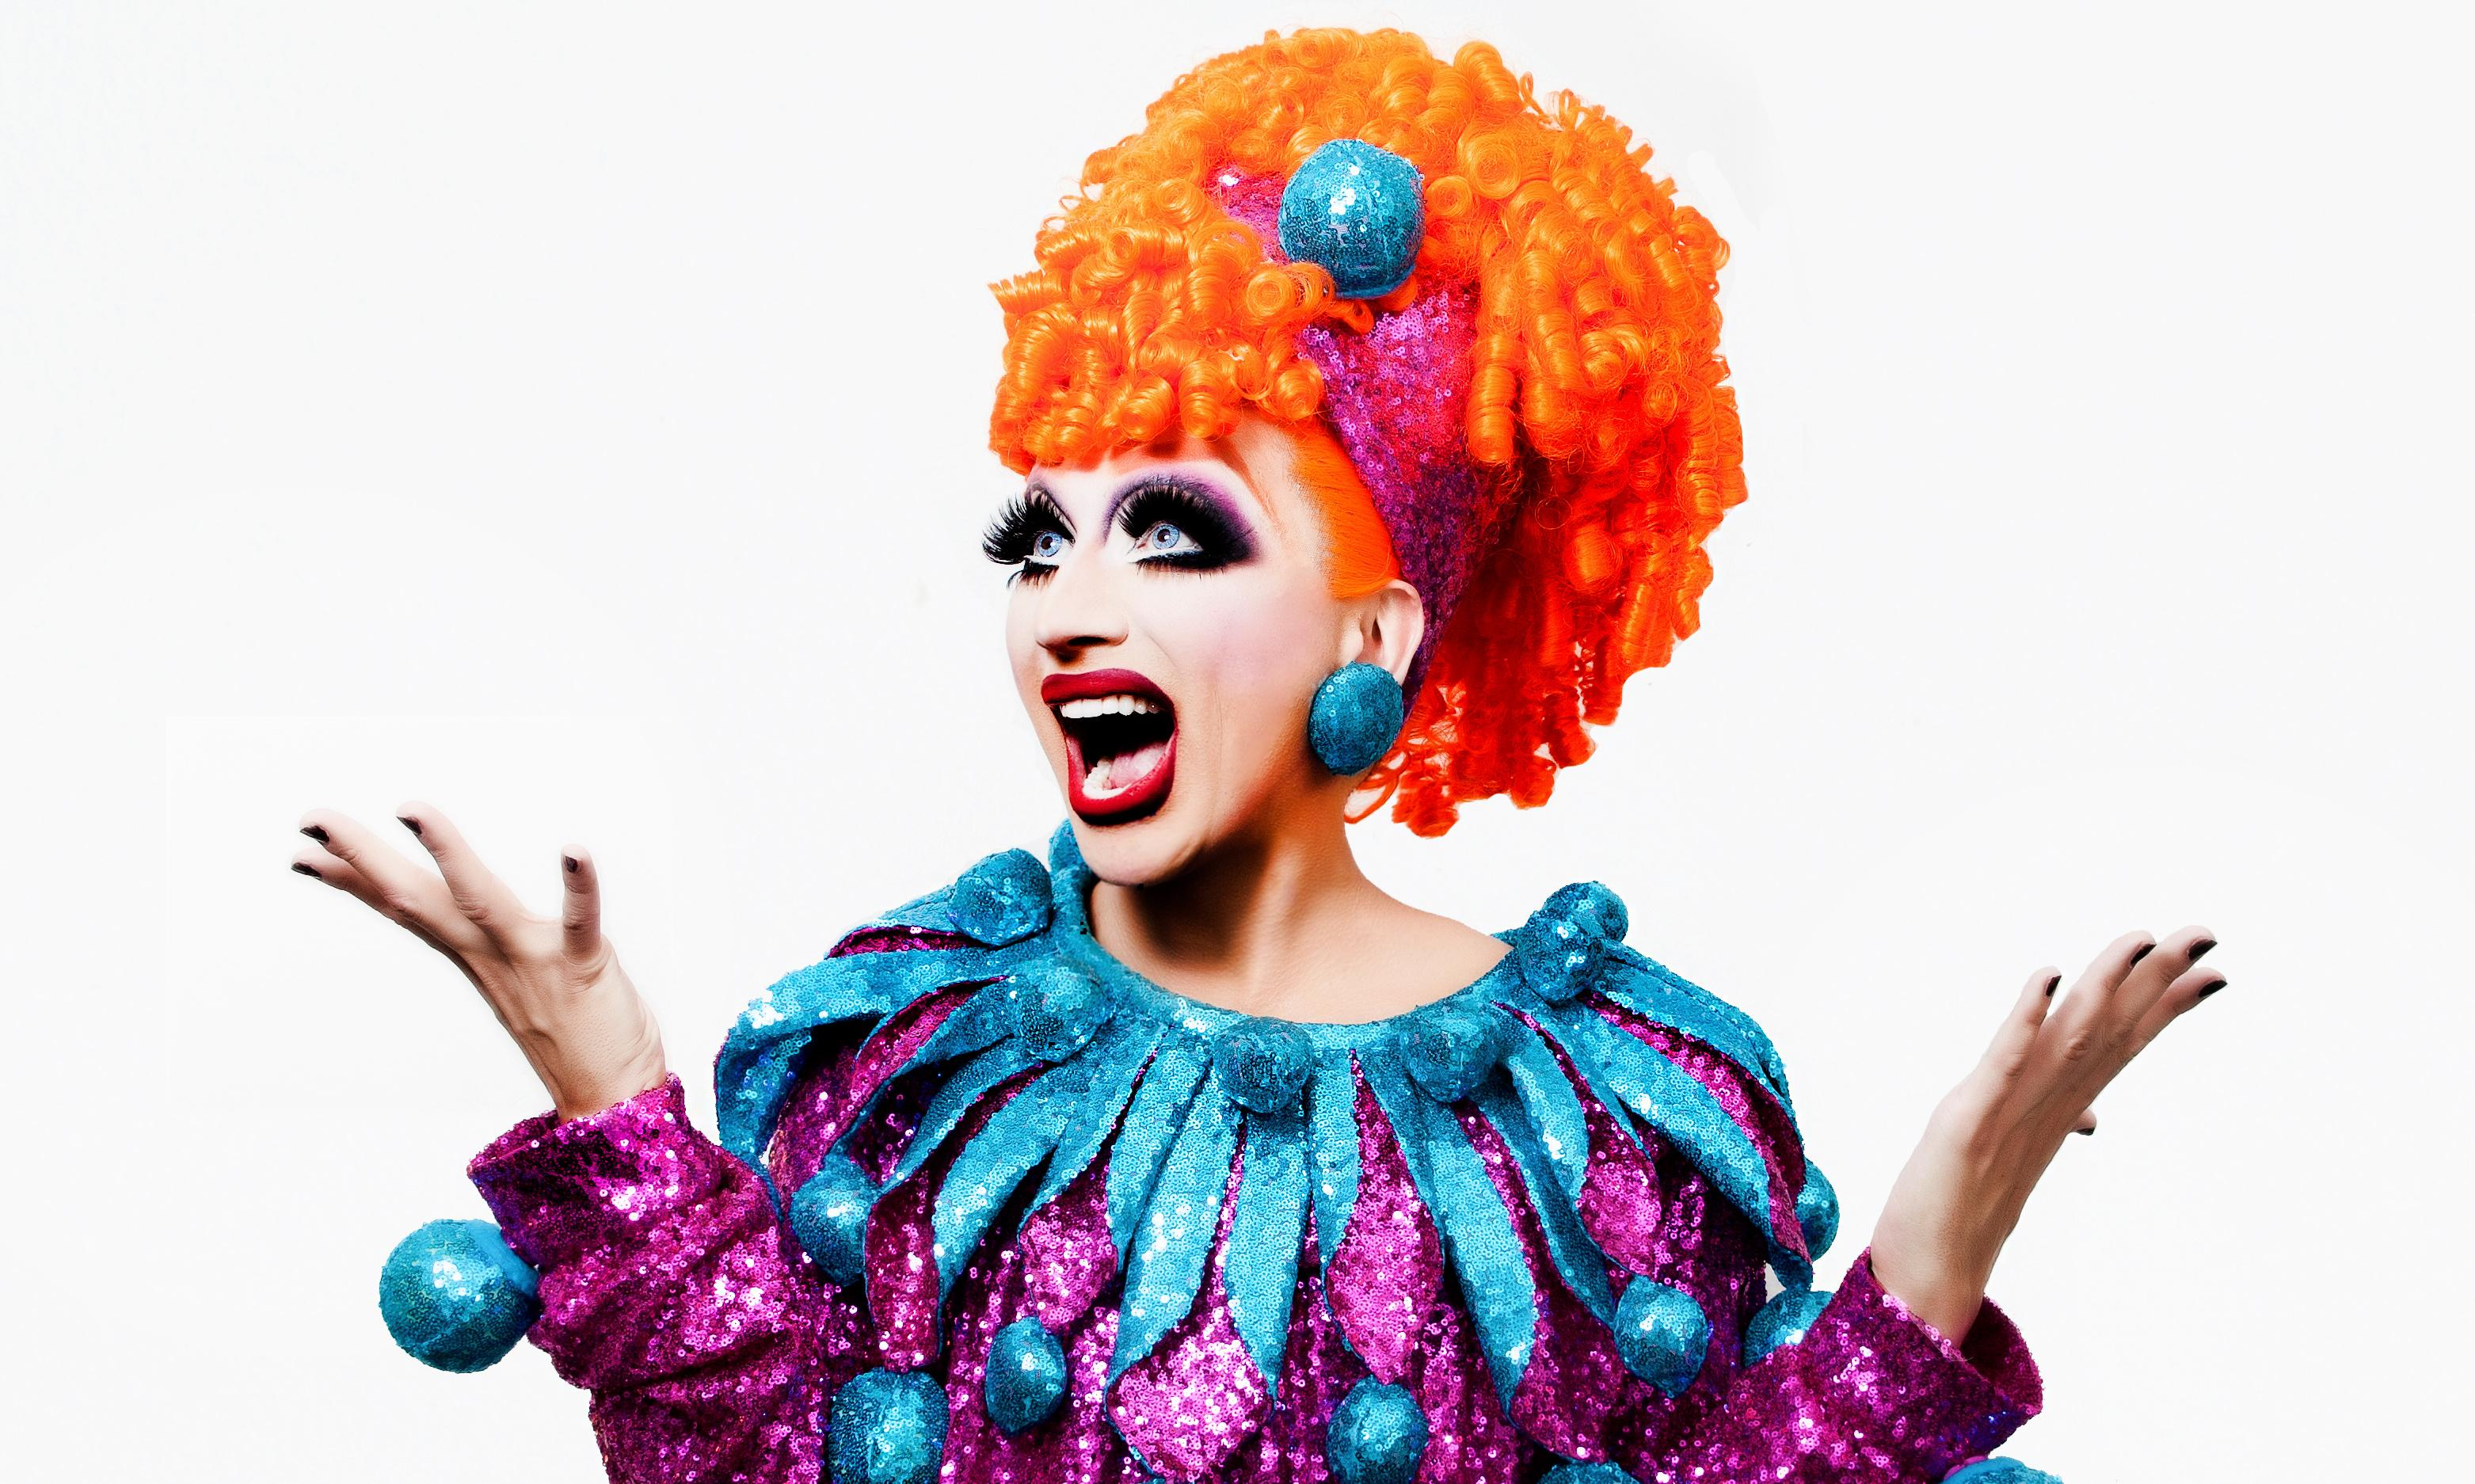 Bianca del Rio review – startlingly mean drag star loves to hate